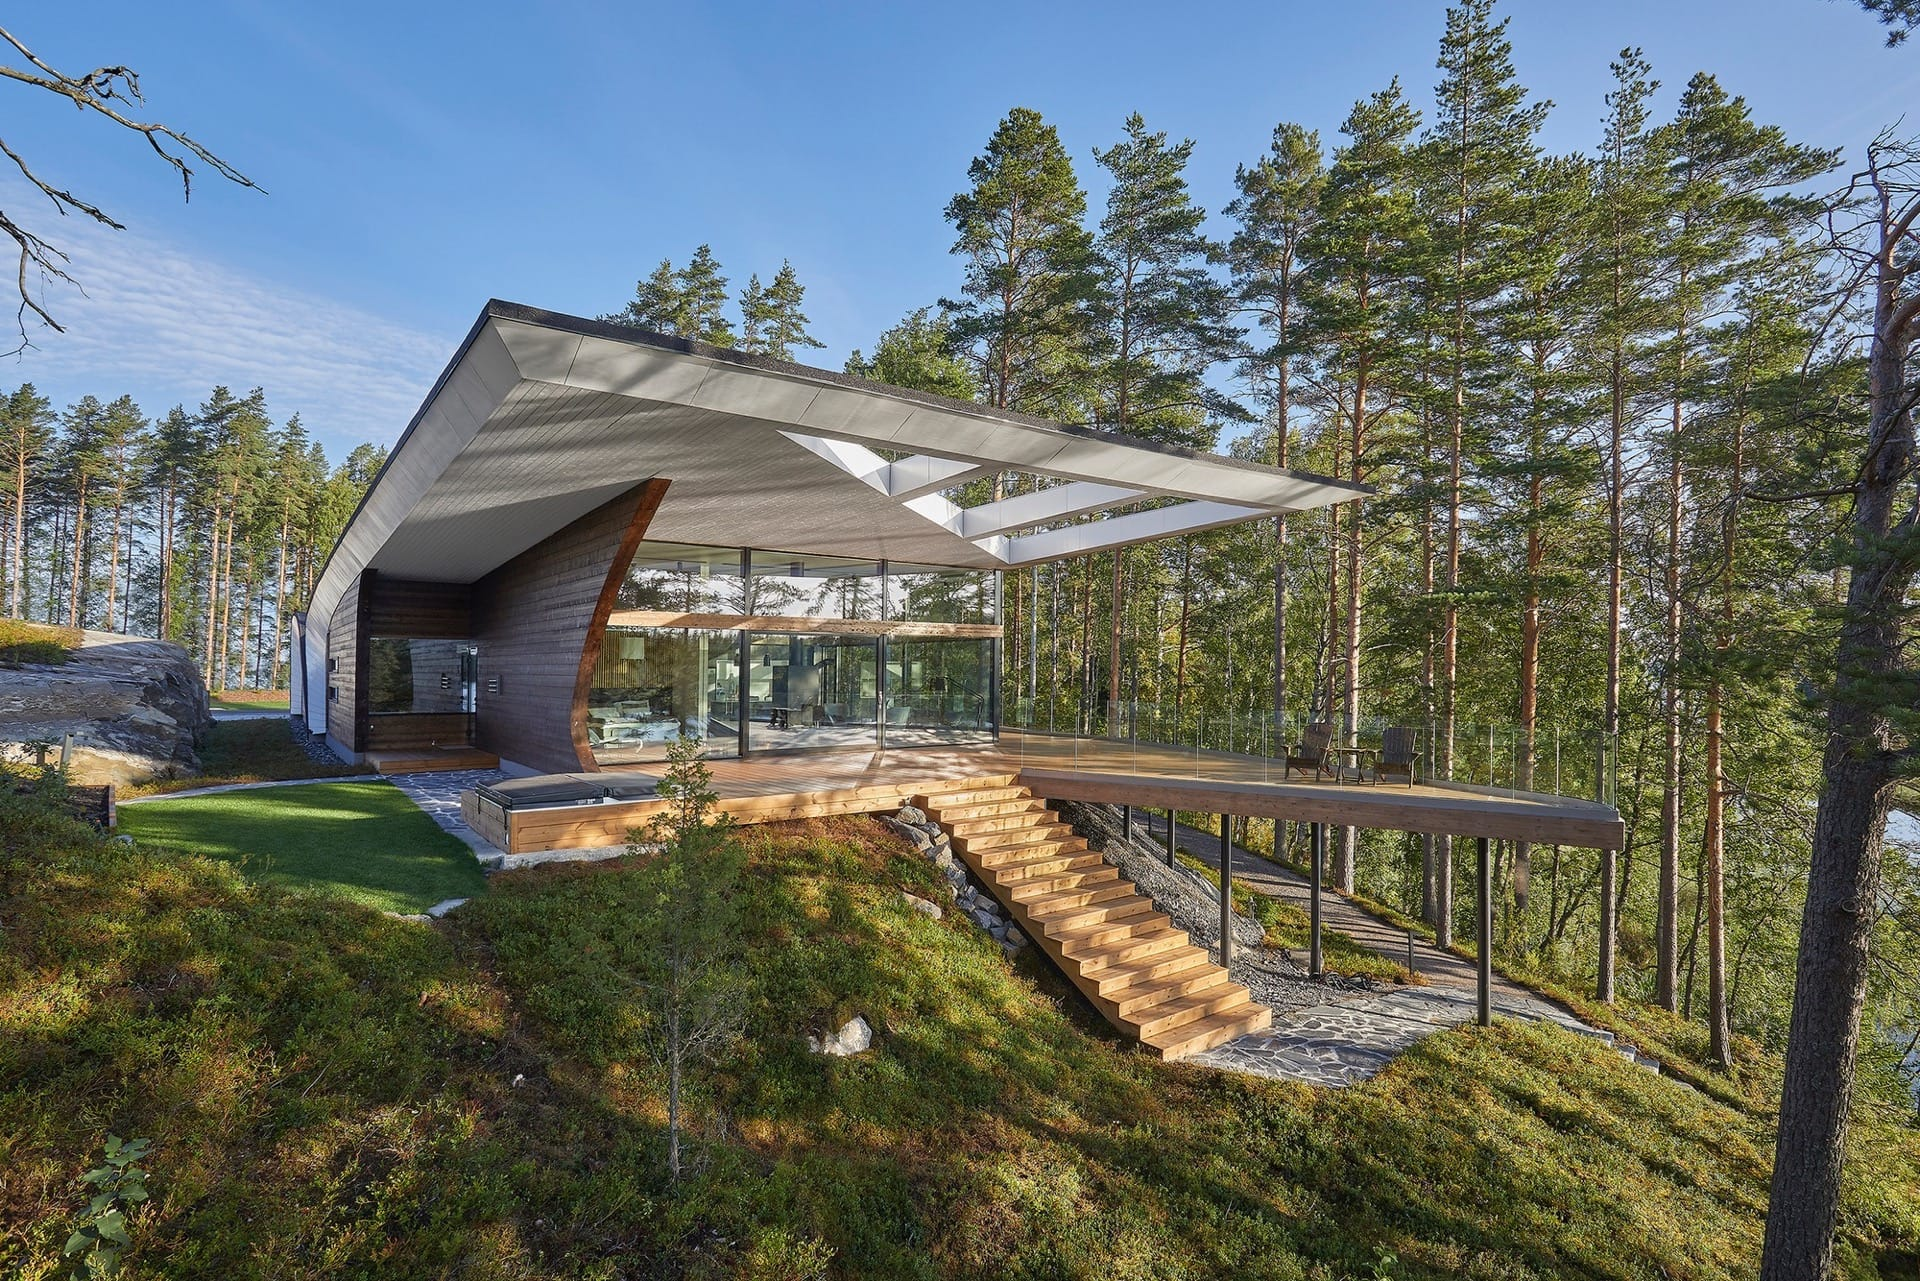 Хай-тек дом Wave House в Финляндии от Seppo Mäntylä, HQ architecture, HQarch, HQ arch, high quality architecture